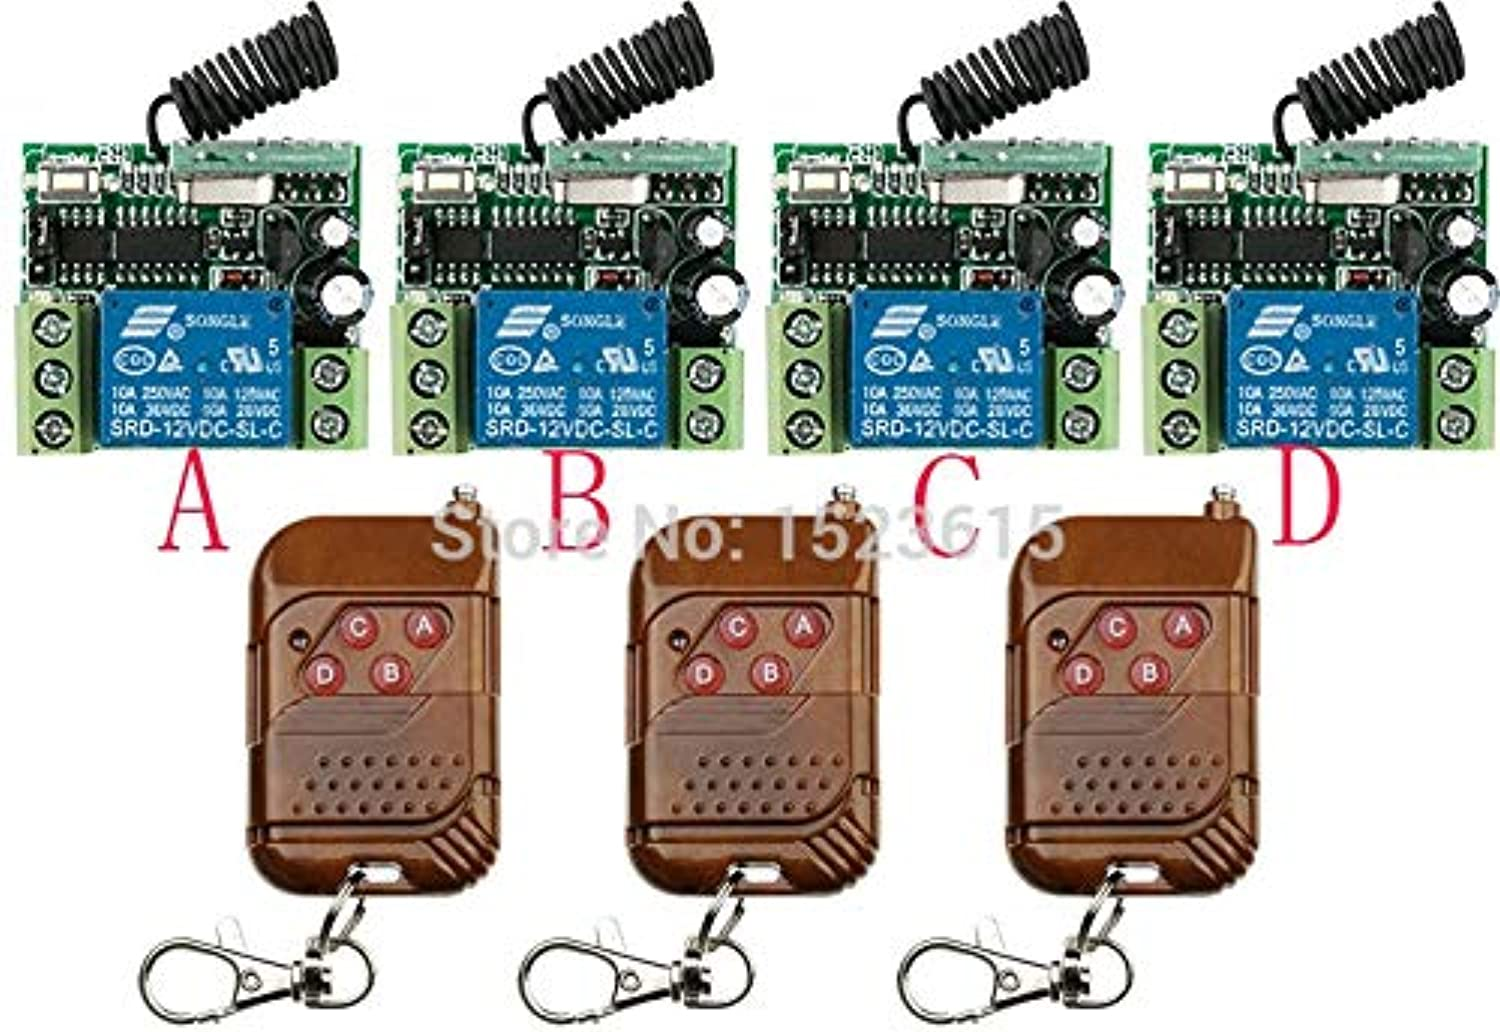 Hot Sales DC12V 10A 1Channe RF Wireless Remote Control Switch System teleswitch 3 X Transmitter +4X Receiver,315 433 MHZ